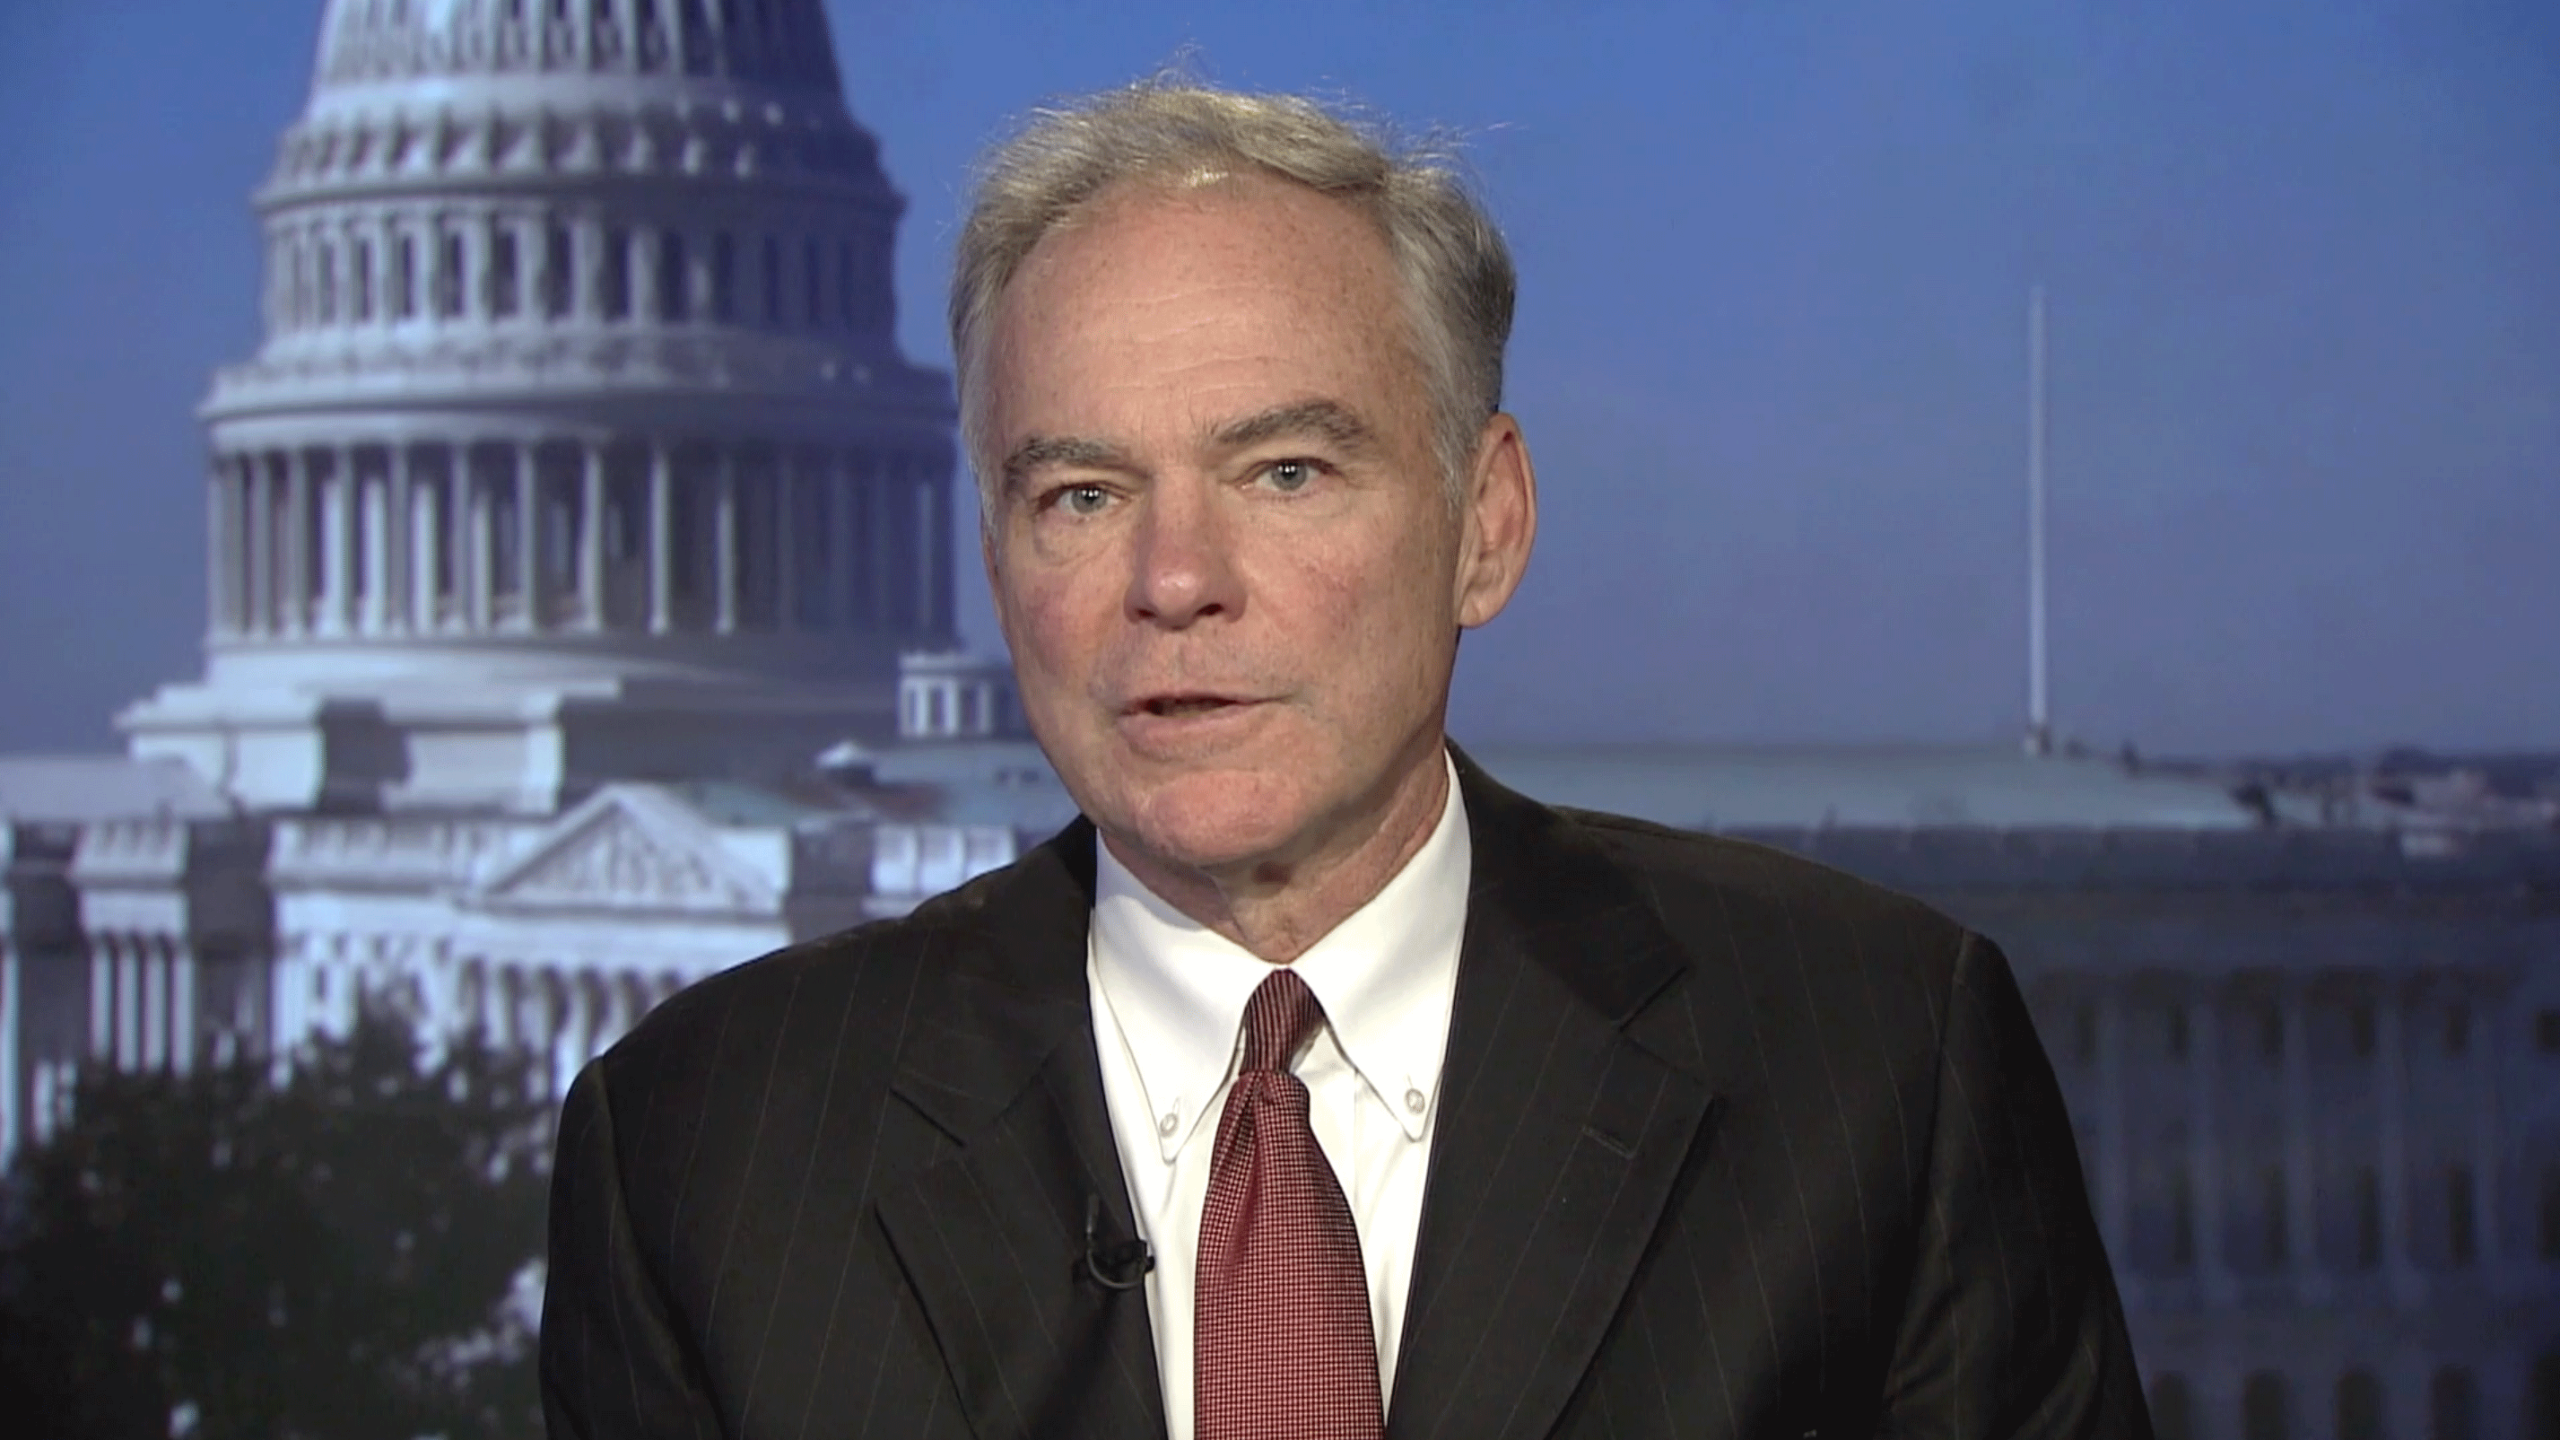 Sen. Tim Kaine (D-Va.) condemned President Donald Trump's use of Pentagon funds for the border wall. (Photo: WFXR News)